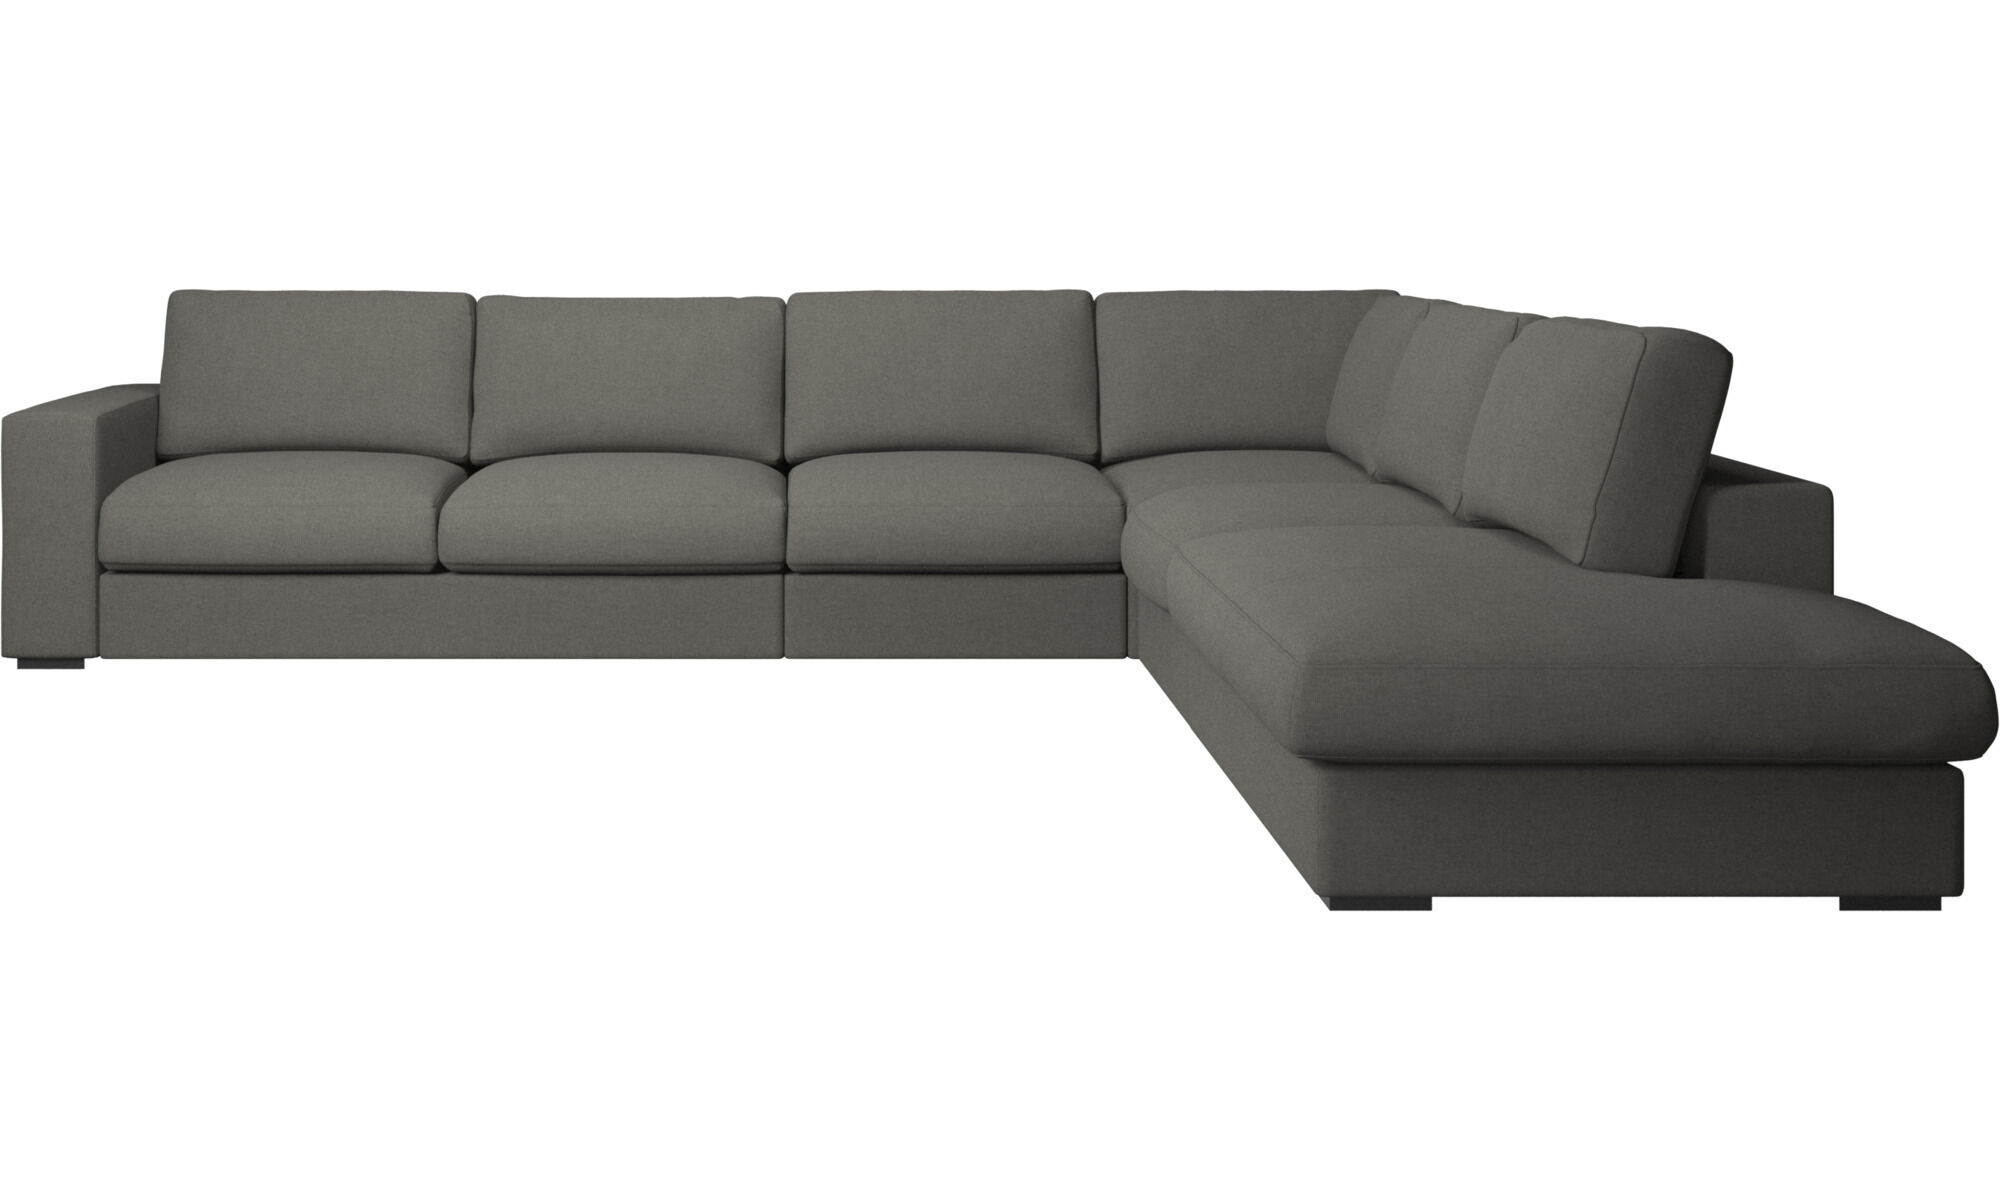 Beau Sofas With Open End   Cenova Corner Sofa With Lounging Unit   Gray   Fabric  ...